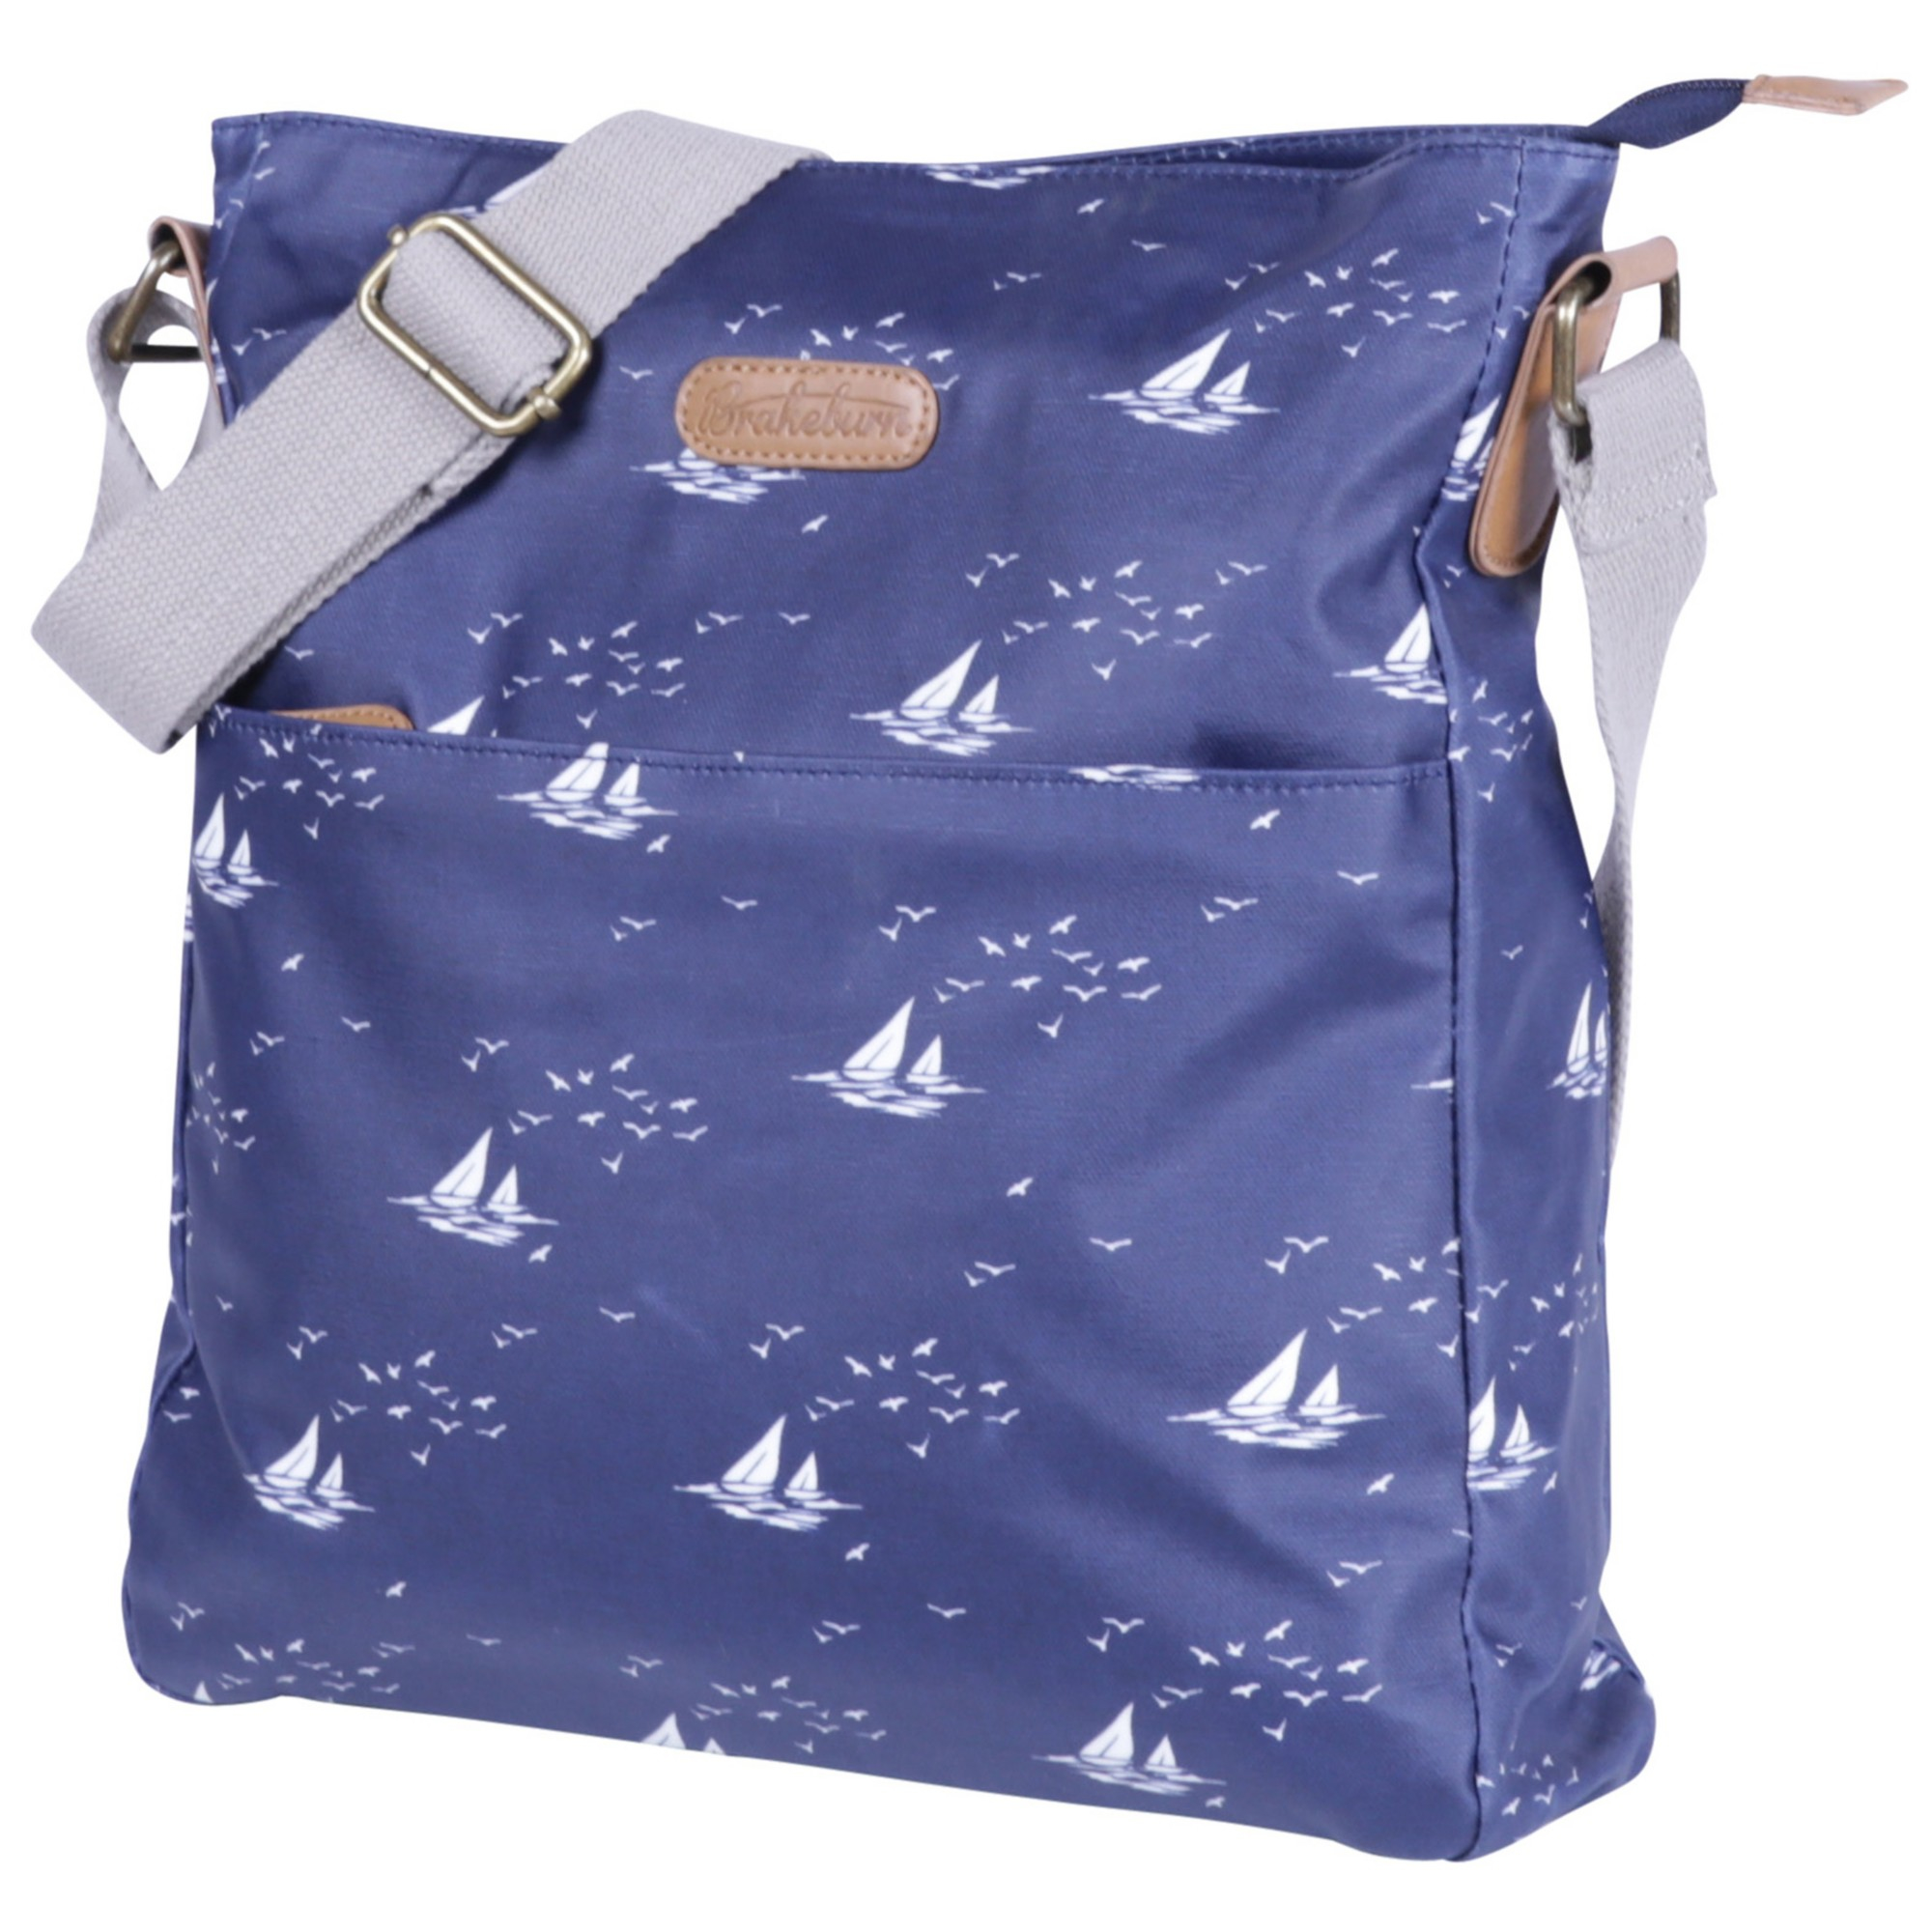 c29e7274a66 Brakeburn Boats And Birds Large Saddle Bag in Blue - Lyst